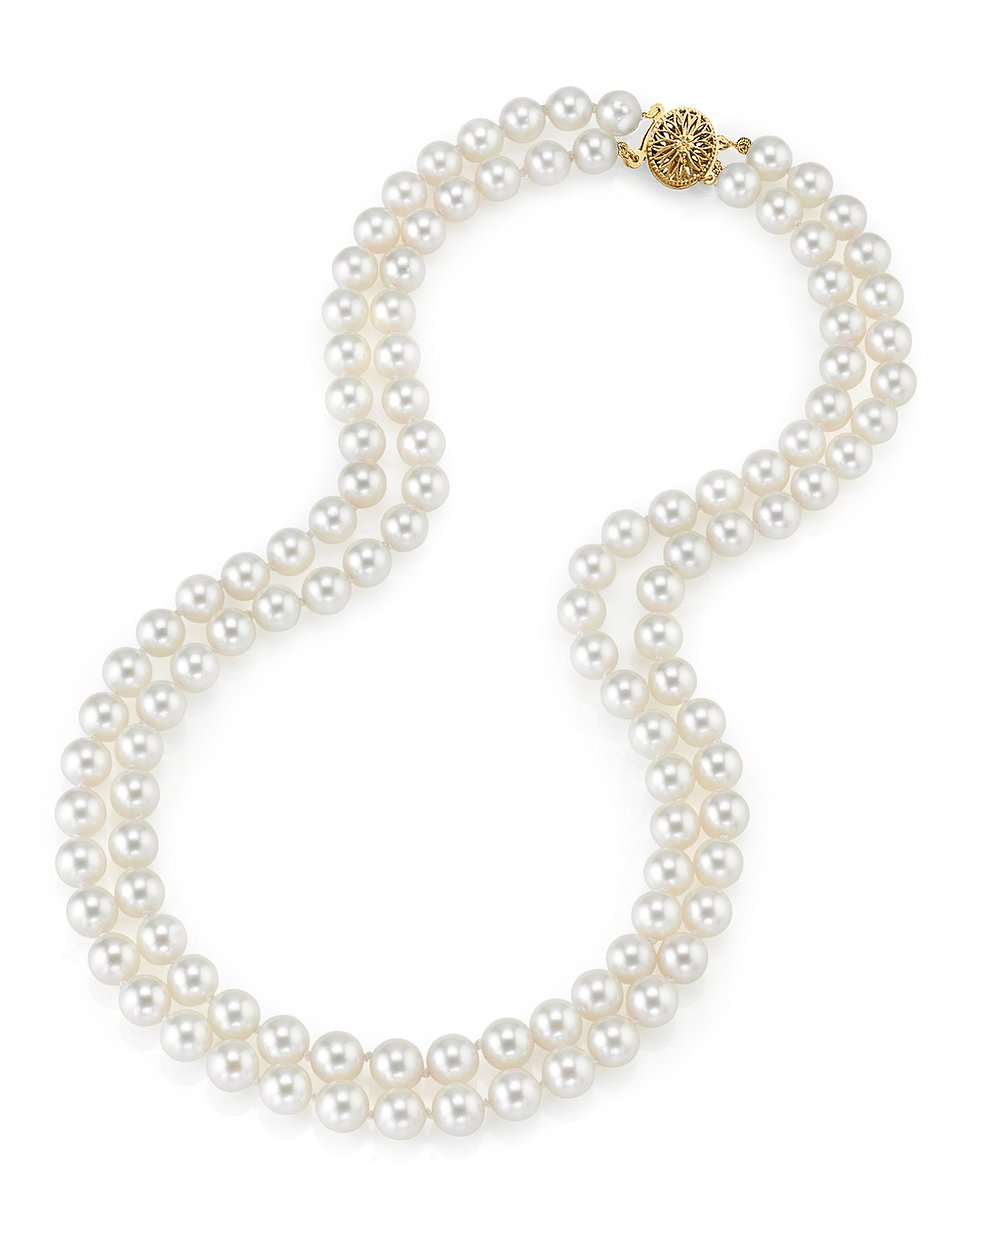 14K Gold Japanese Akoya White Cultured Pearl Double Strand Necklace - AA+ Quality, 18-19'' Necklace Length